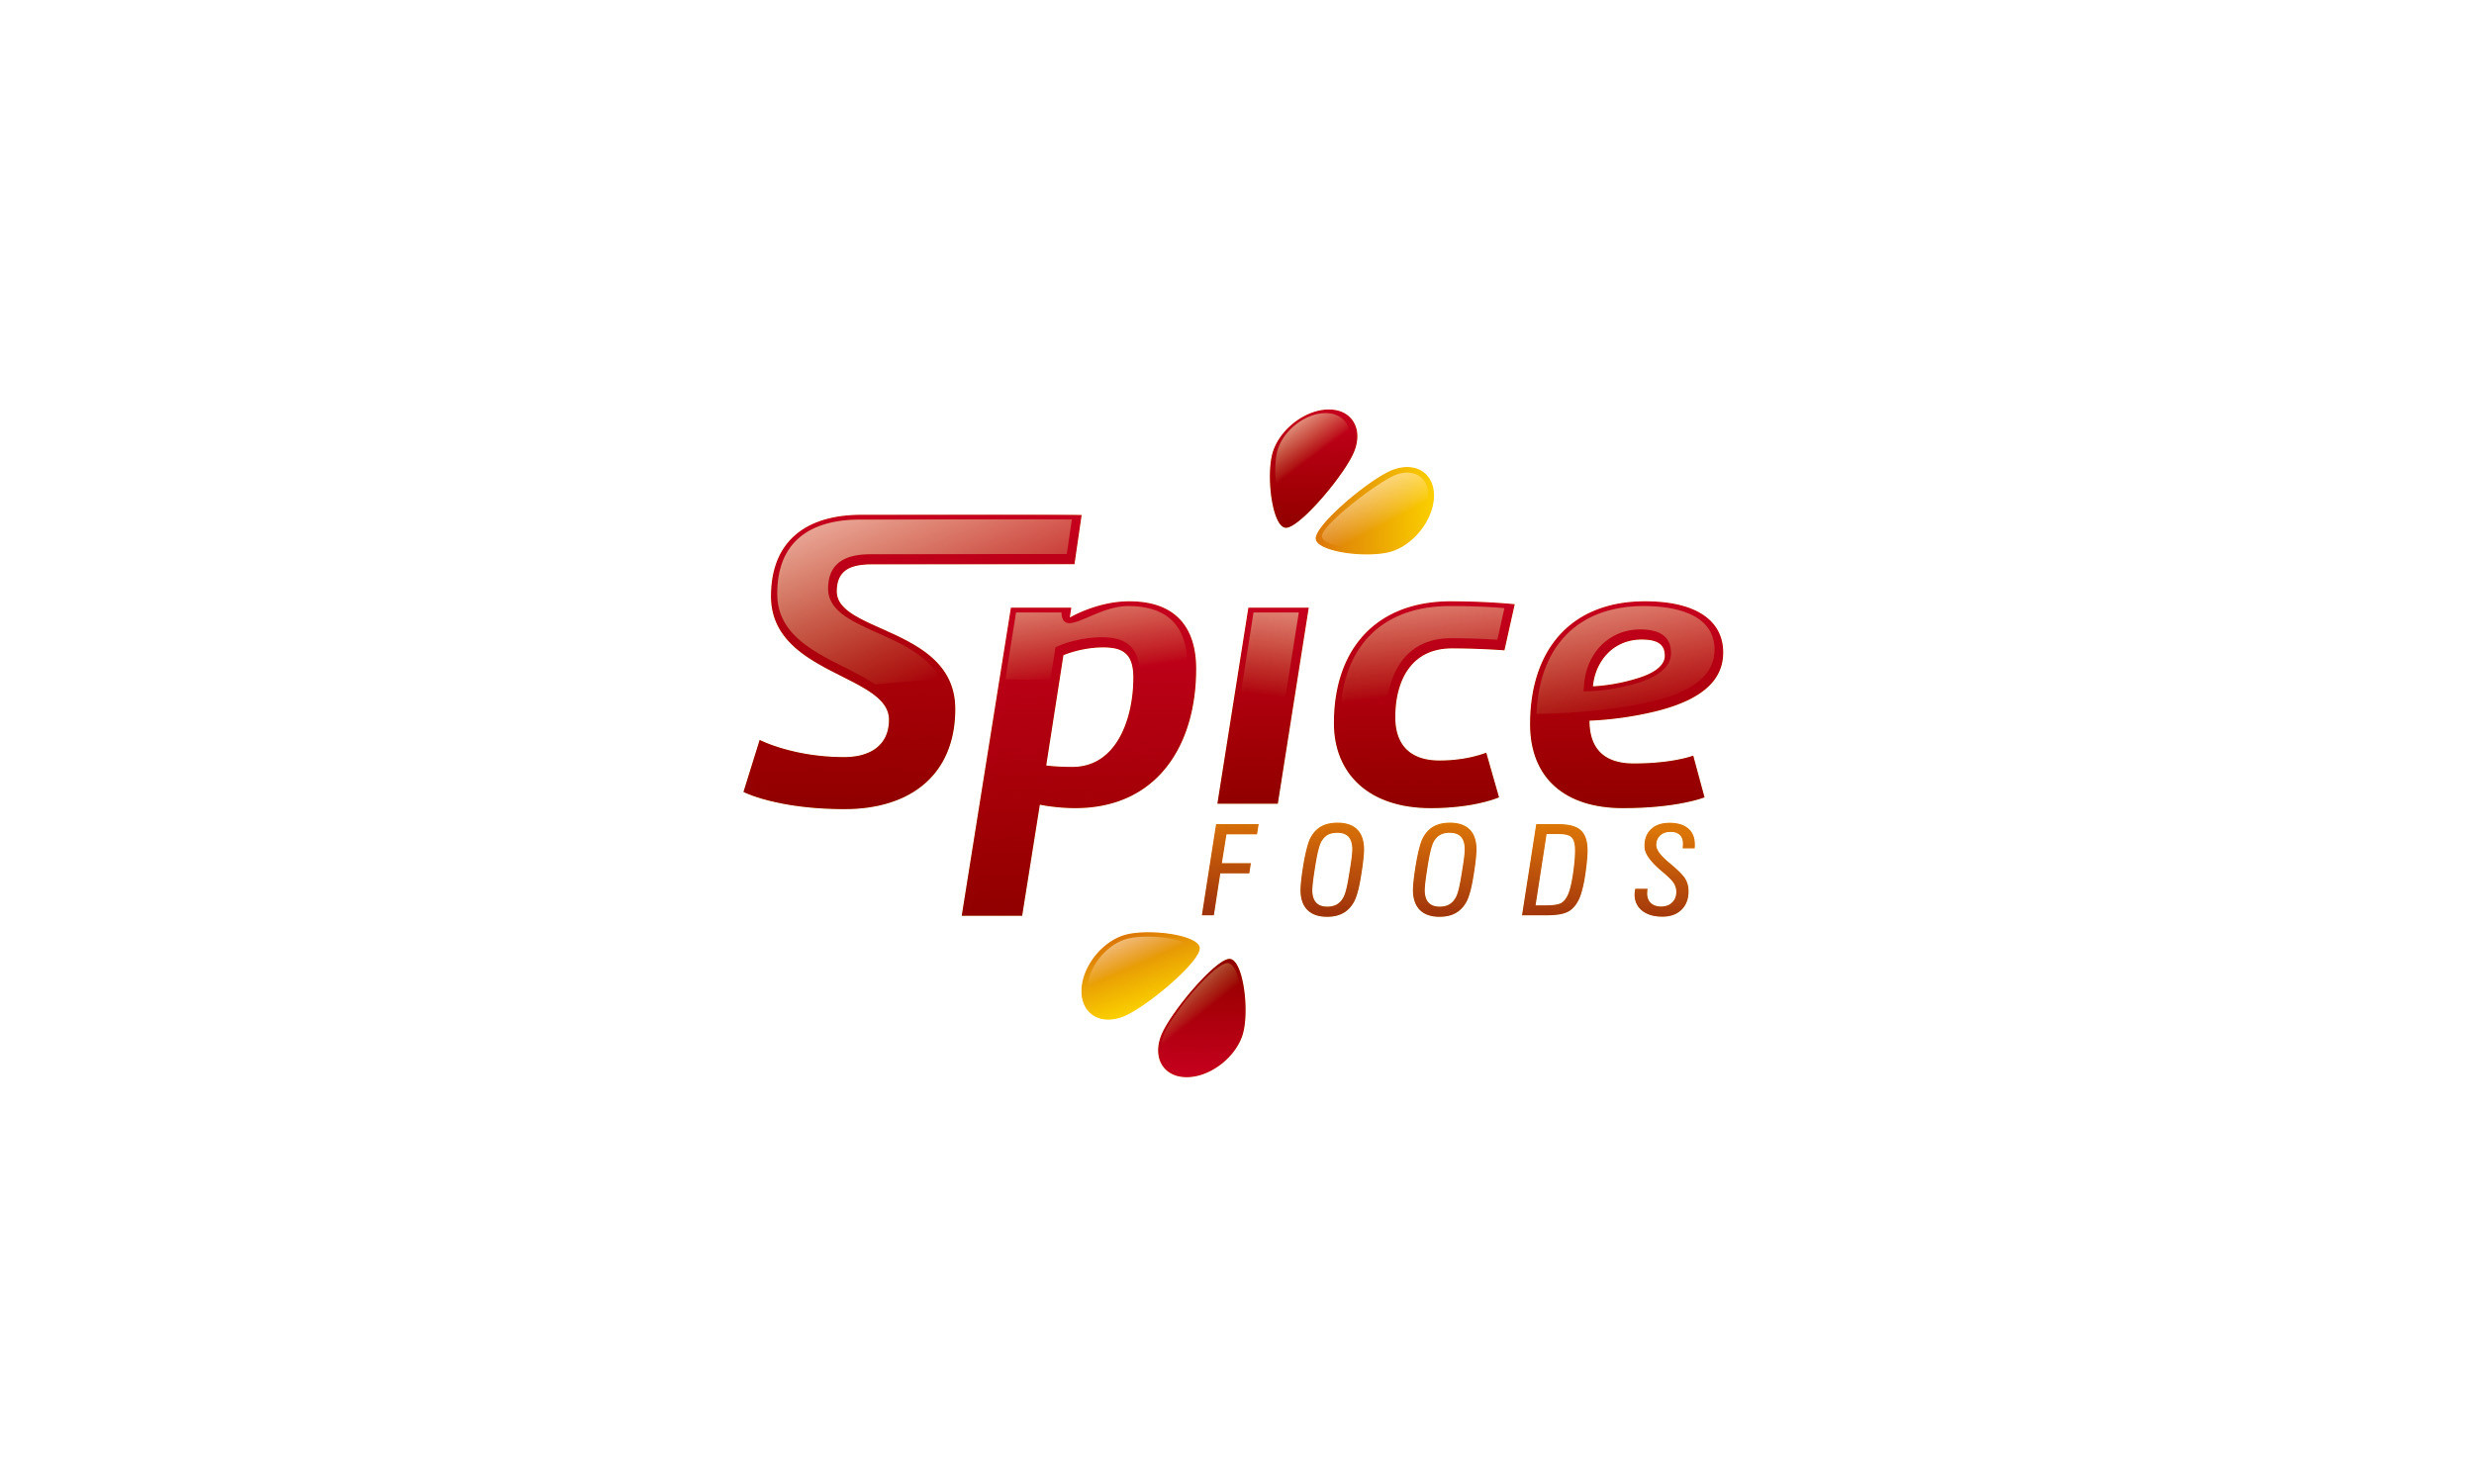 Spice Foods